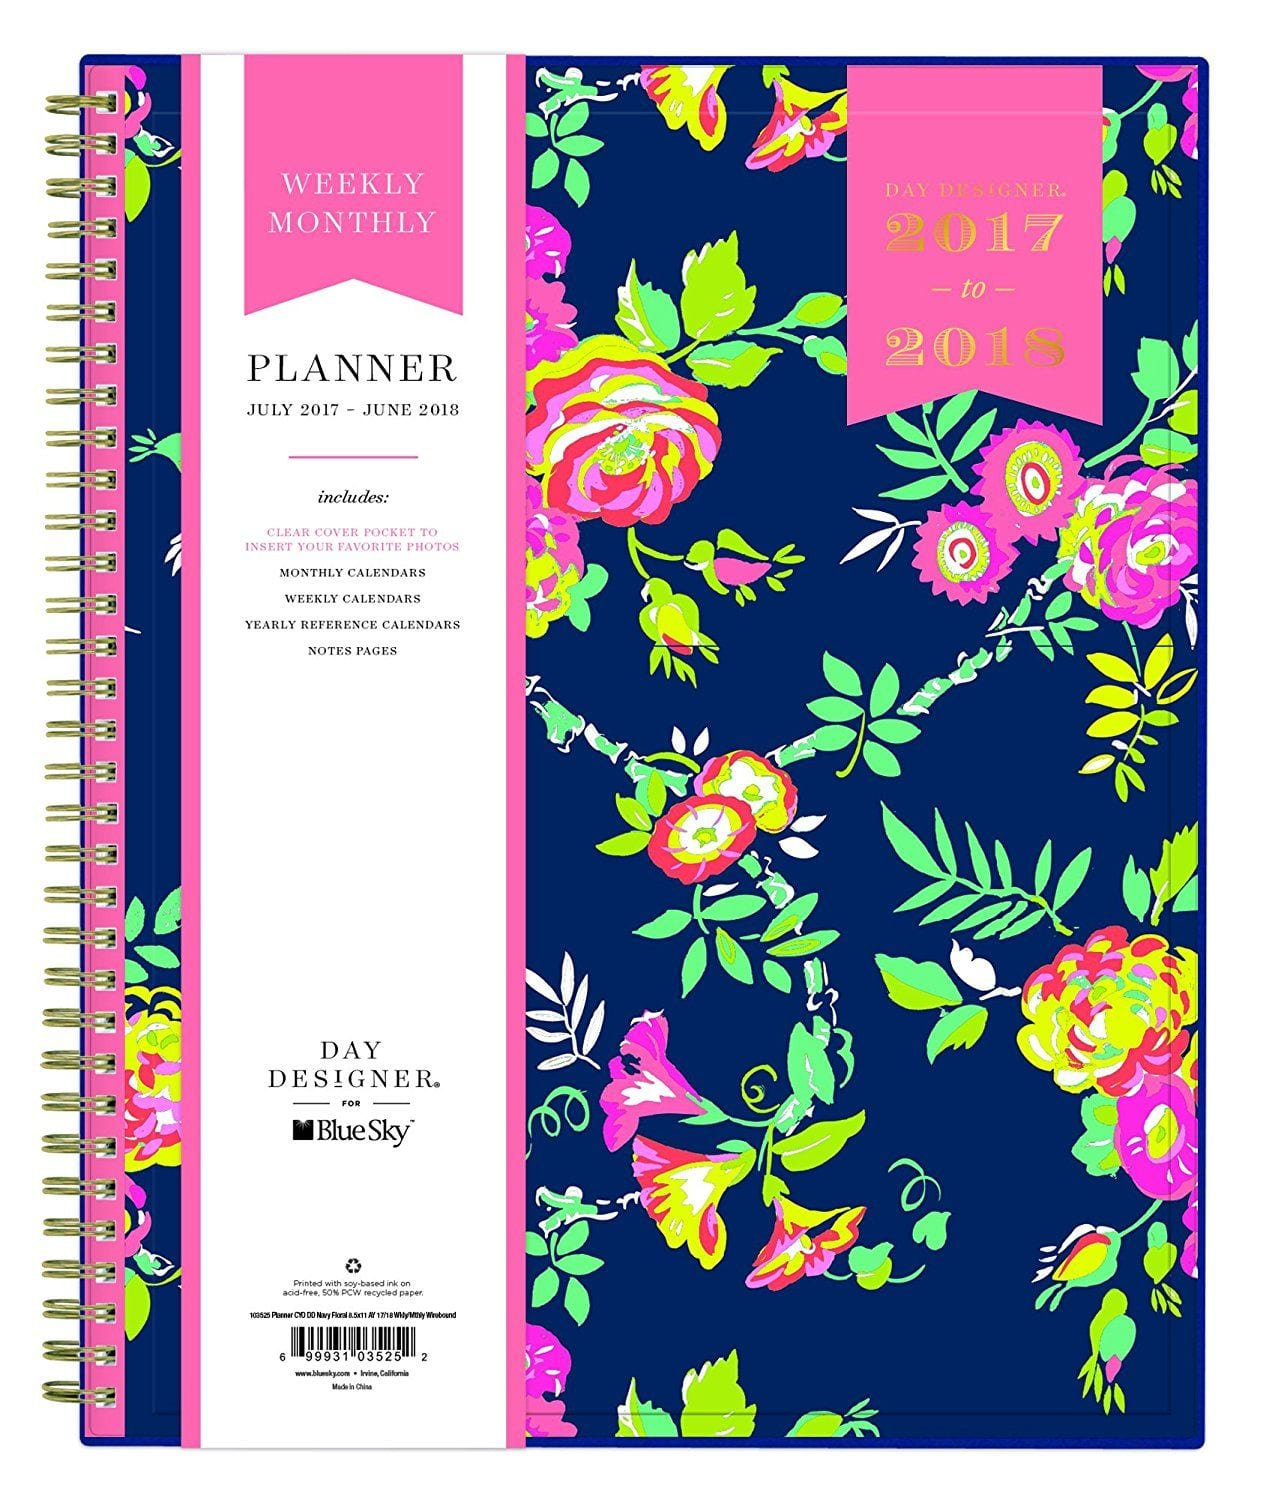 The best new planners for 2017 2018 the happy planner for Planner design